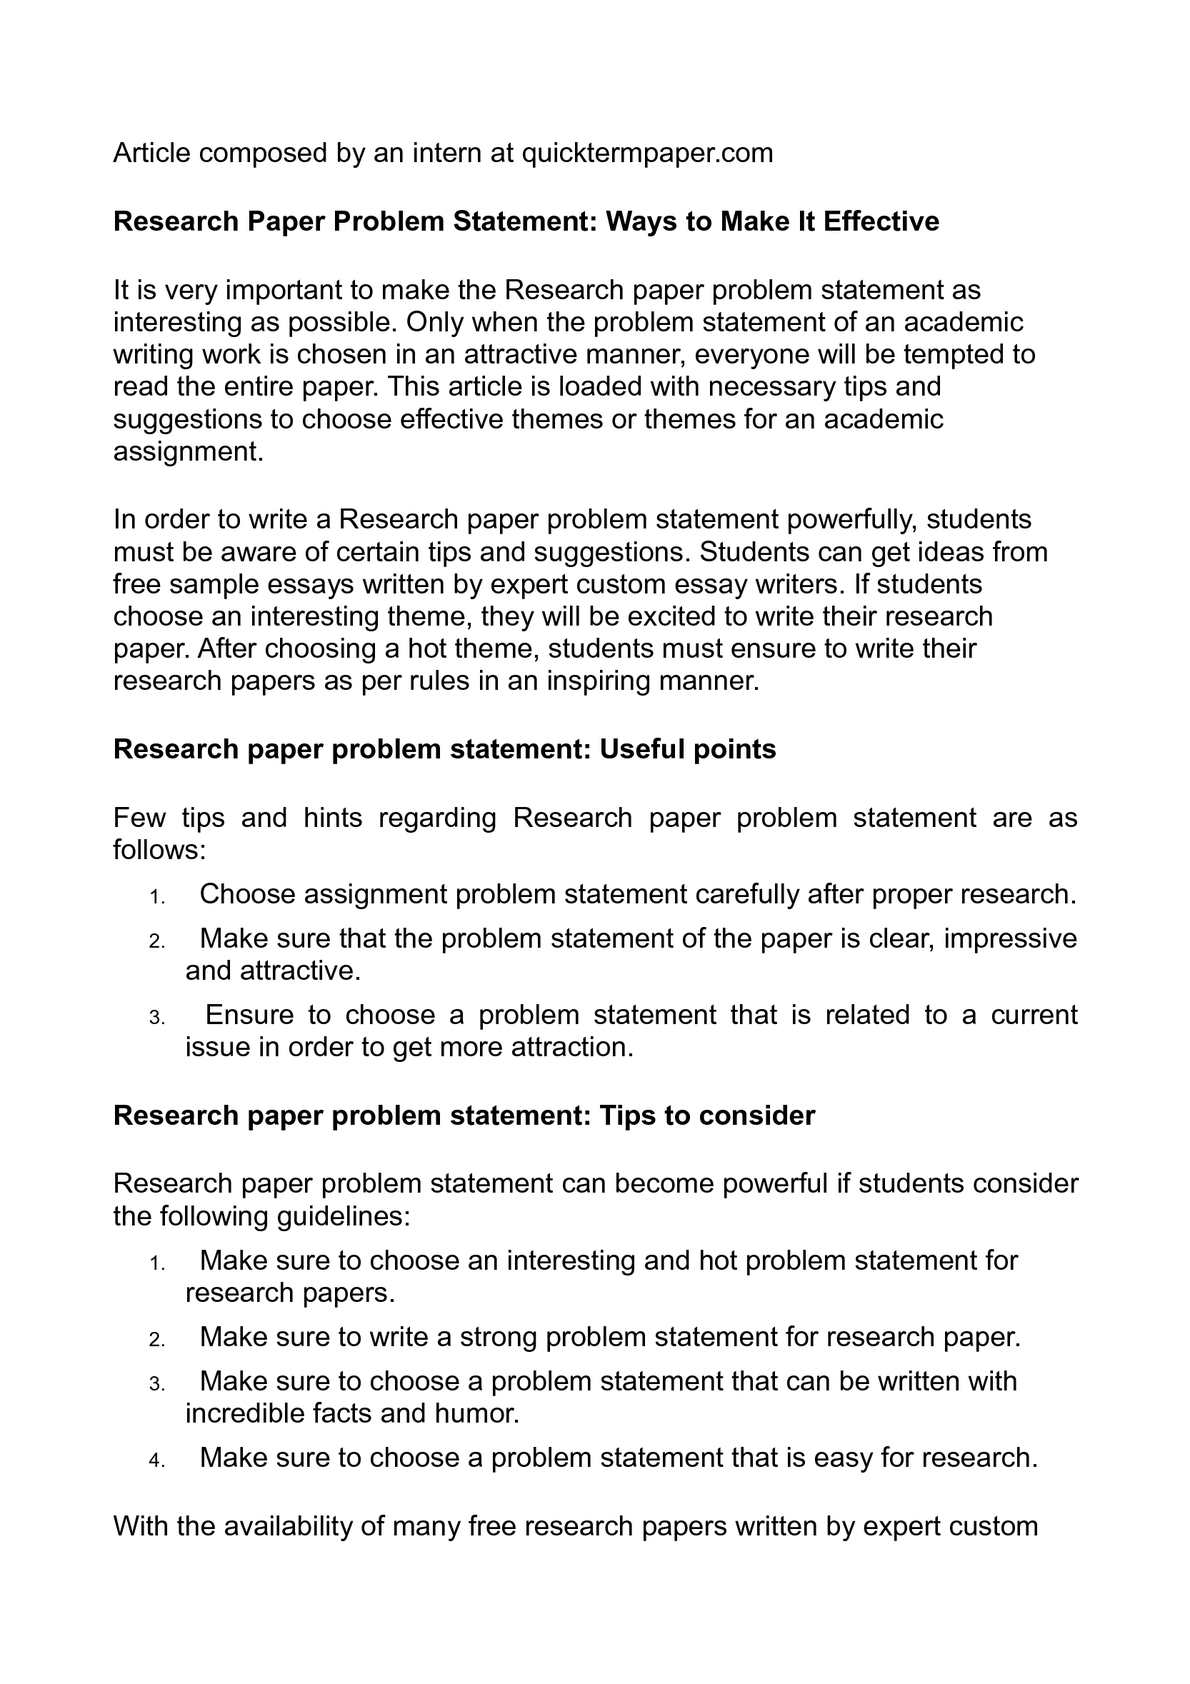 thesis statement form This handout describes what a thesis statement is, how thesis statements work in your writing, and how you can discover or refine one for your draft.